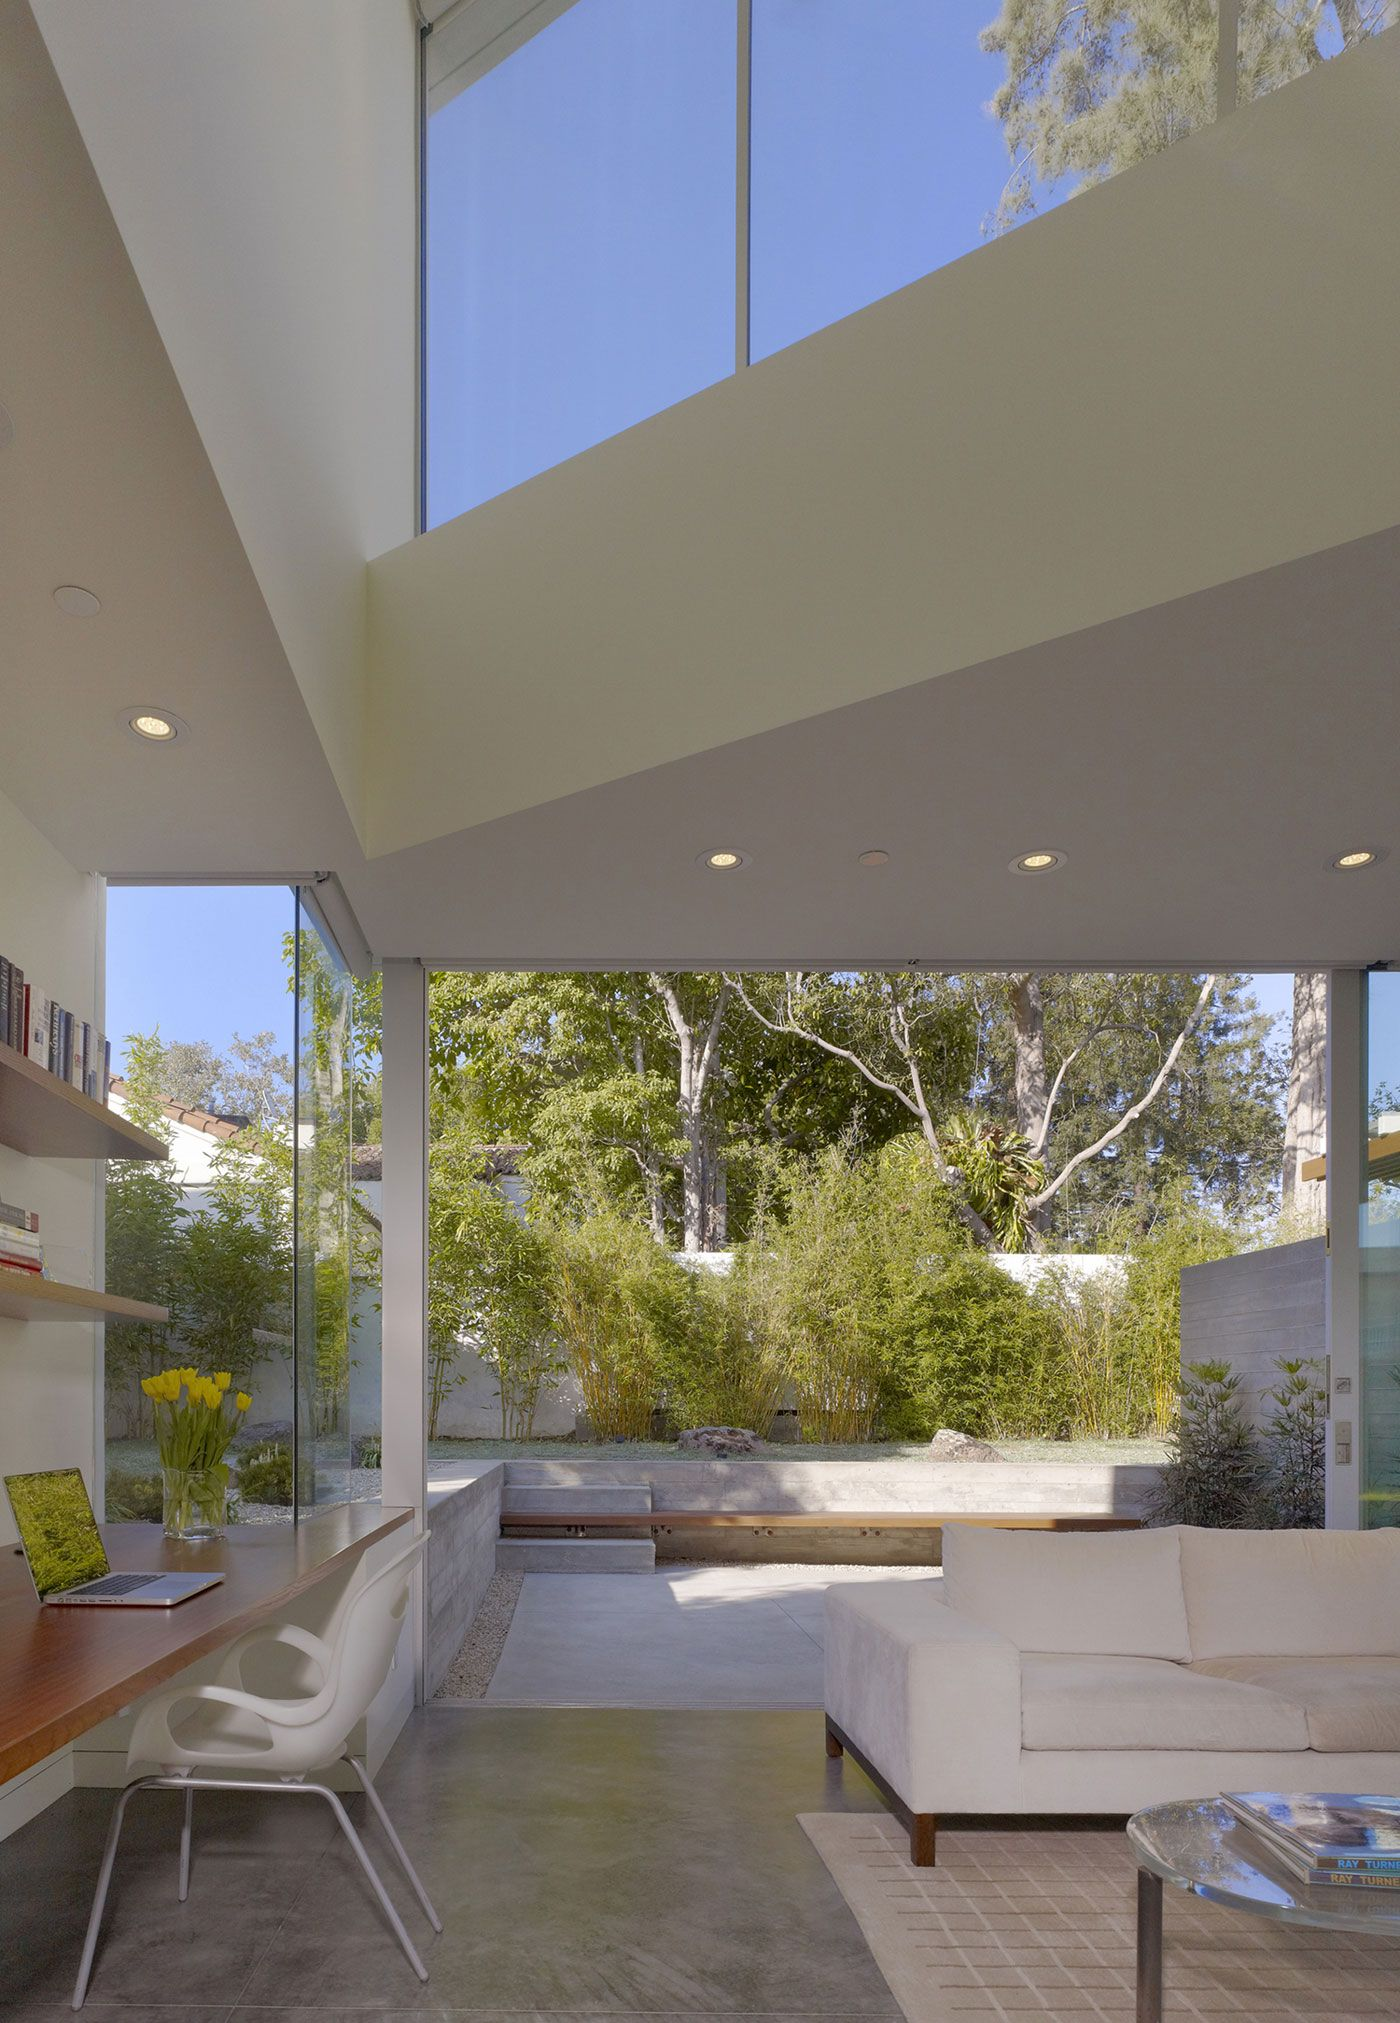 indoor-outdoor living // Ehrlich Retreat + by John Friedman Alice Kimm Architects